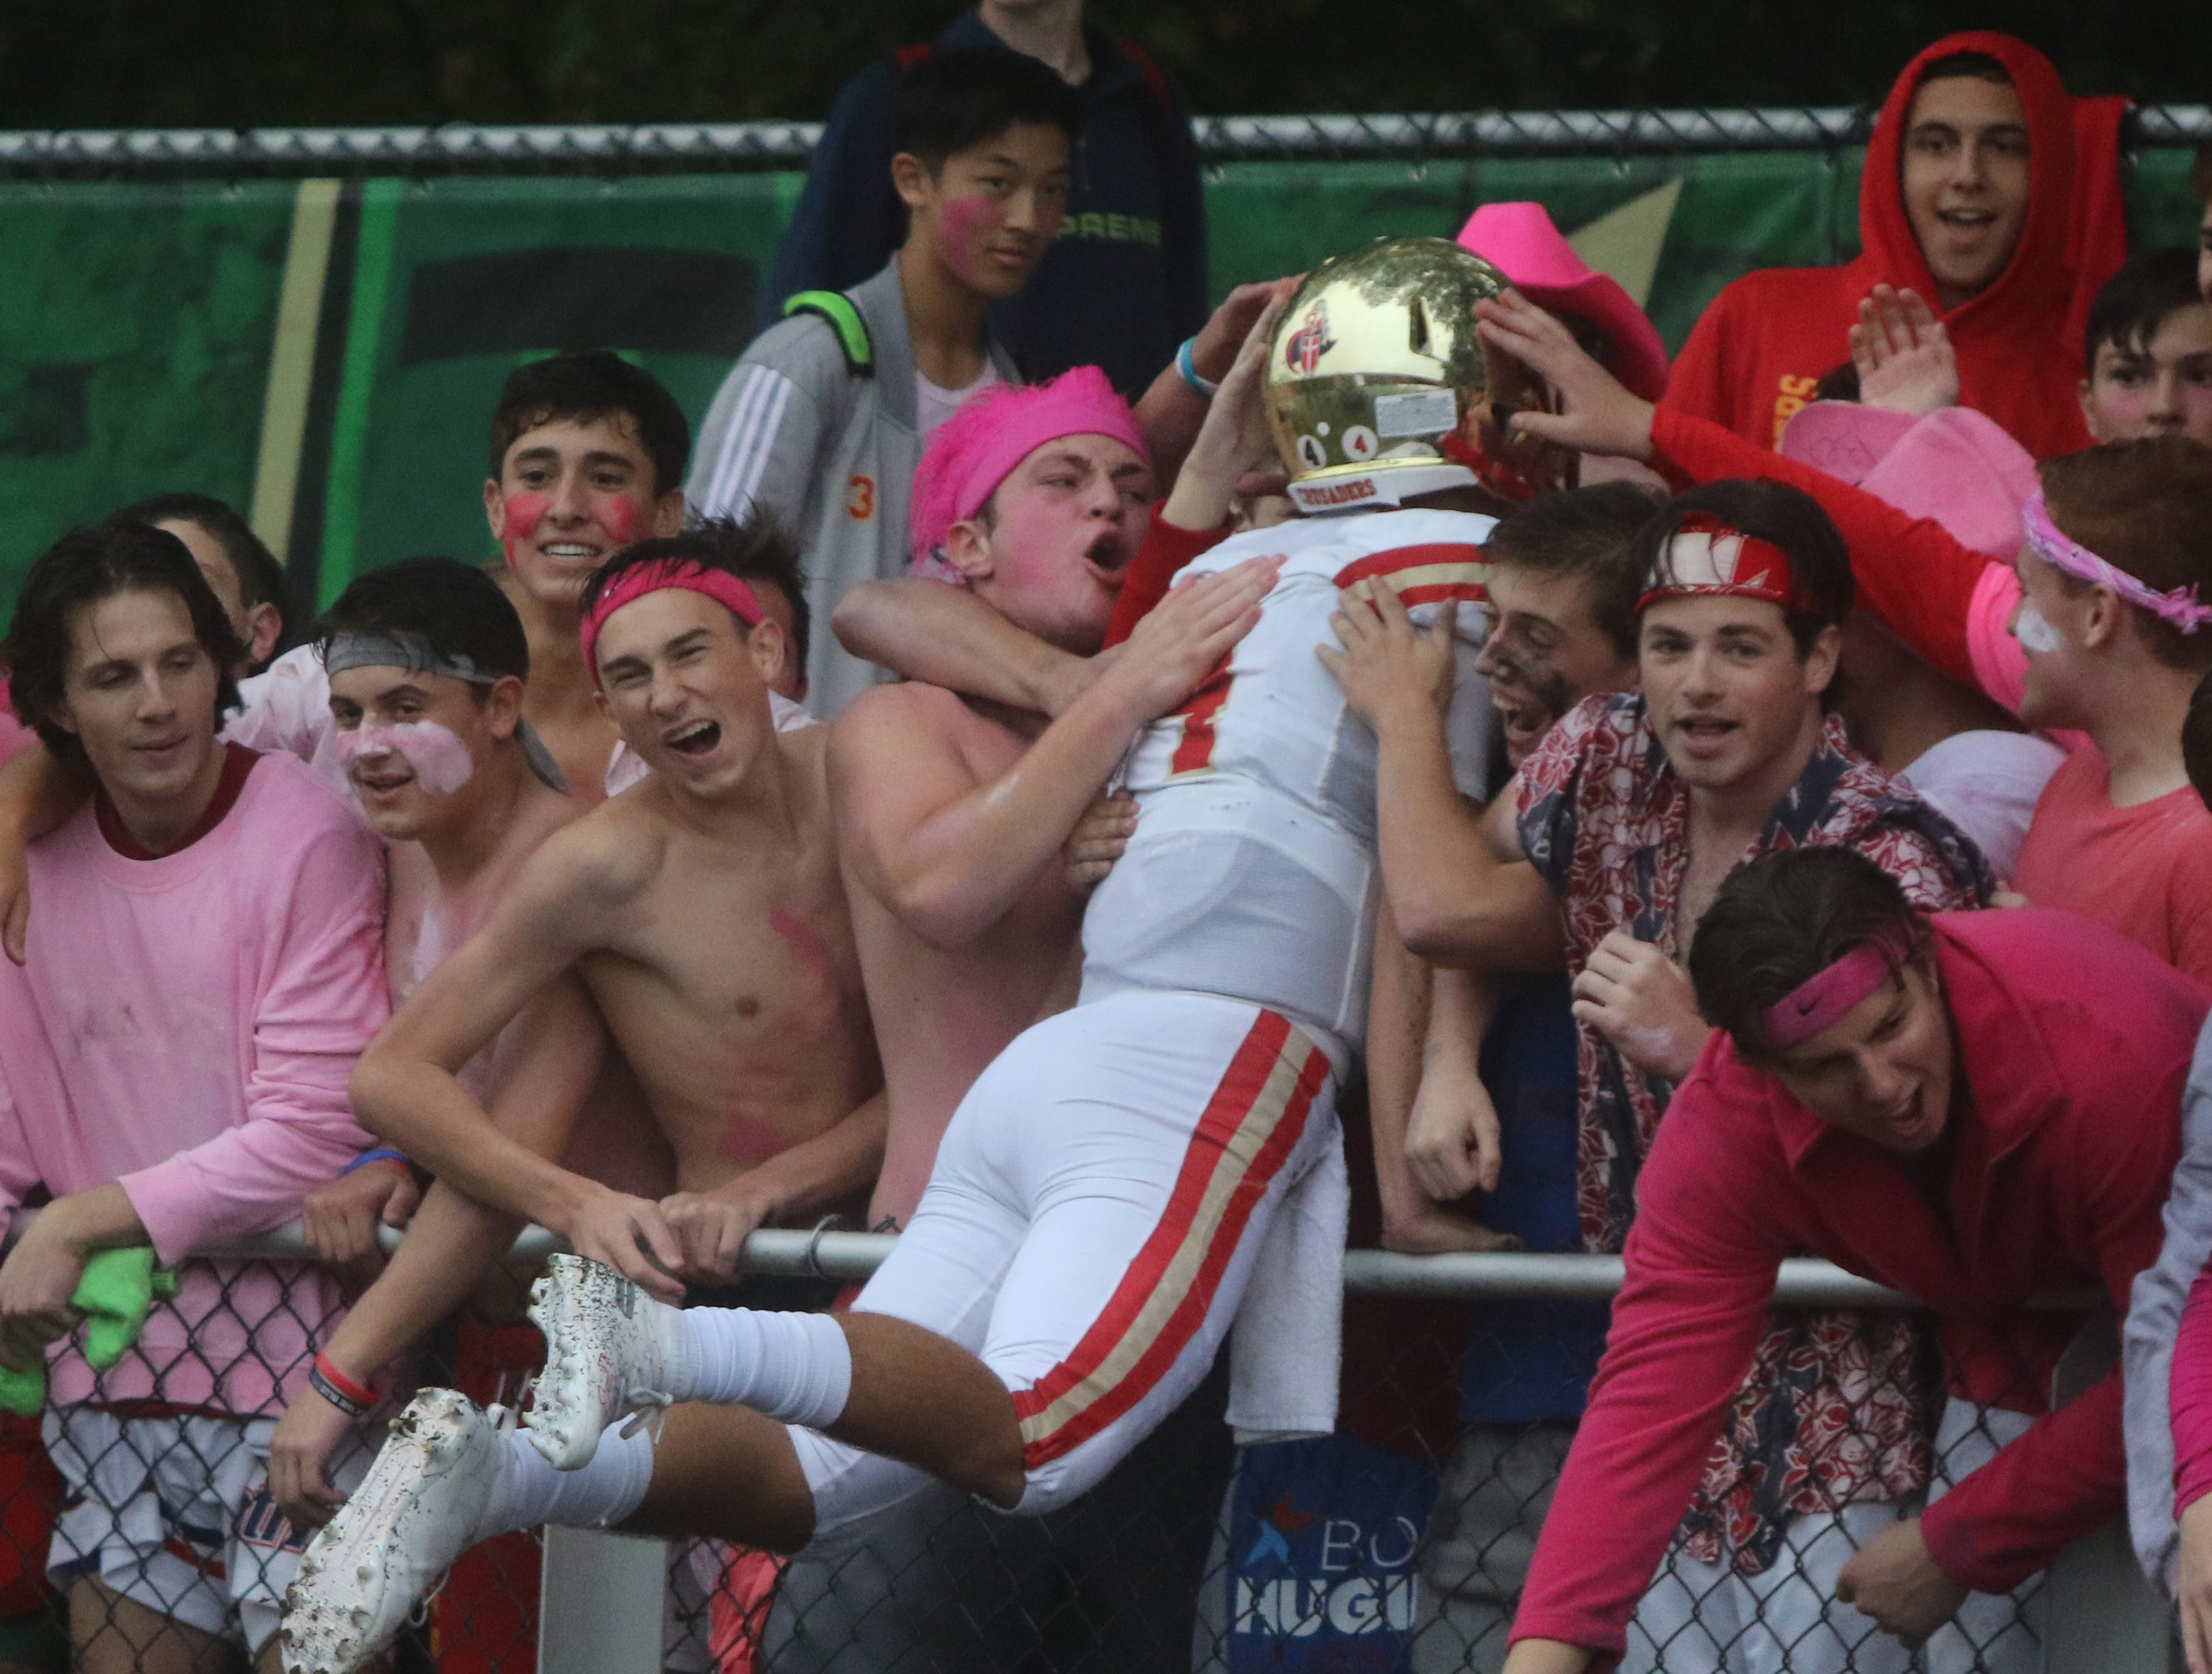 Andrew Boel of Bergen Catholic jumps into the crowd after defeating St. Joseph.